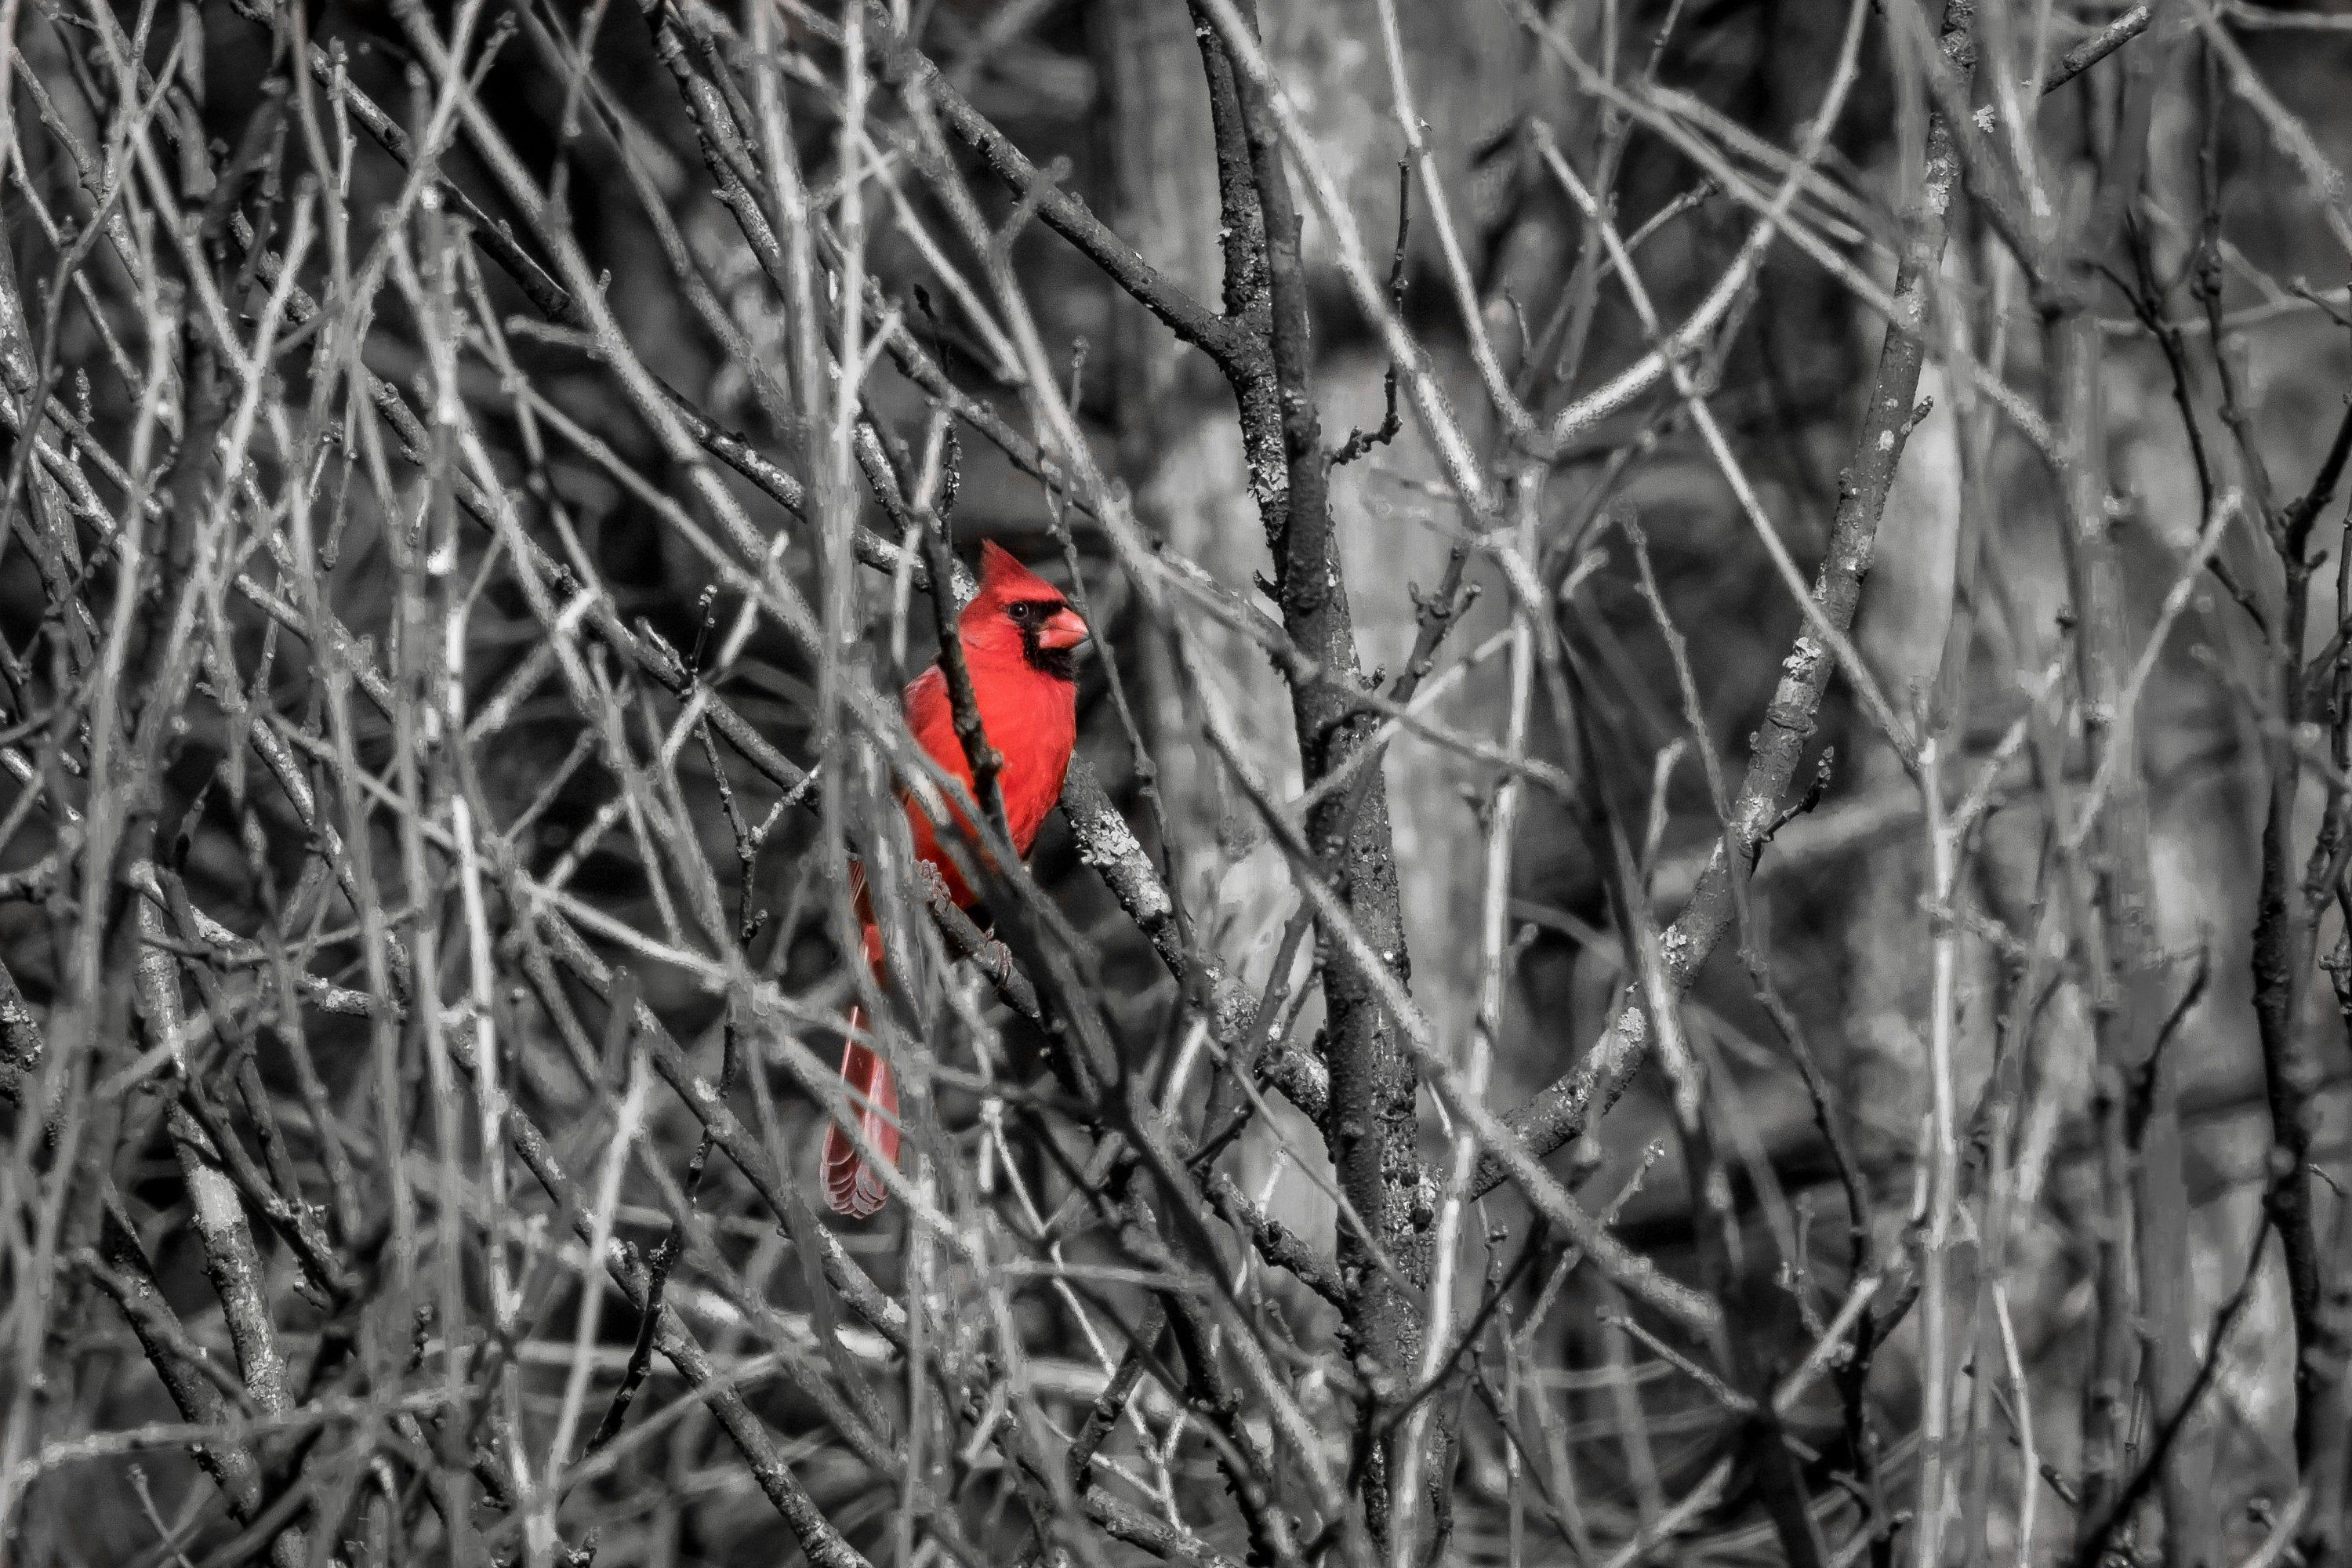 Male Cardinal Red Bird In Black And White Folded Greeting Card With Envelope 5 X 7 Single Card Or Multiples Blank Inside Fr Red Birds Blue Butterfly Cards